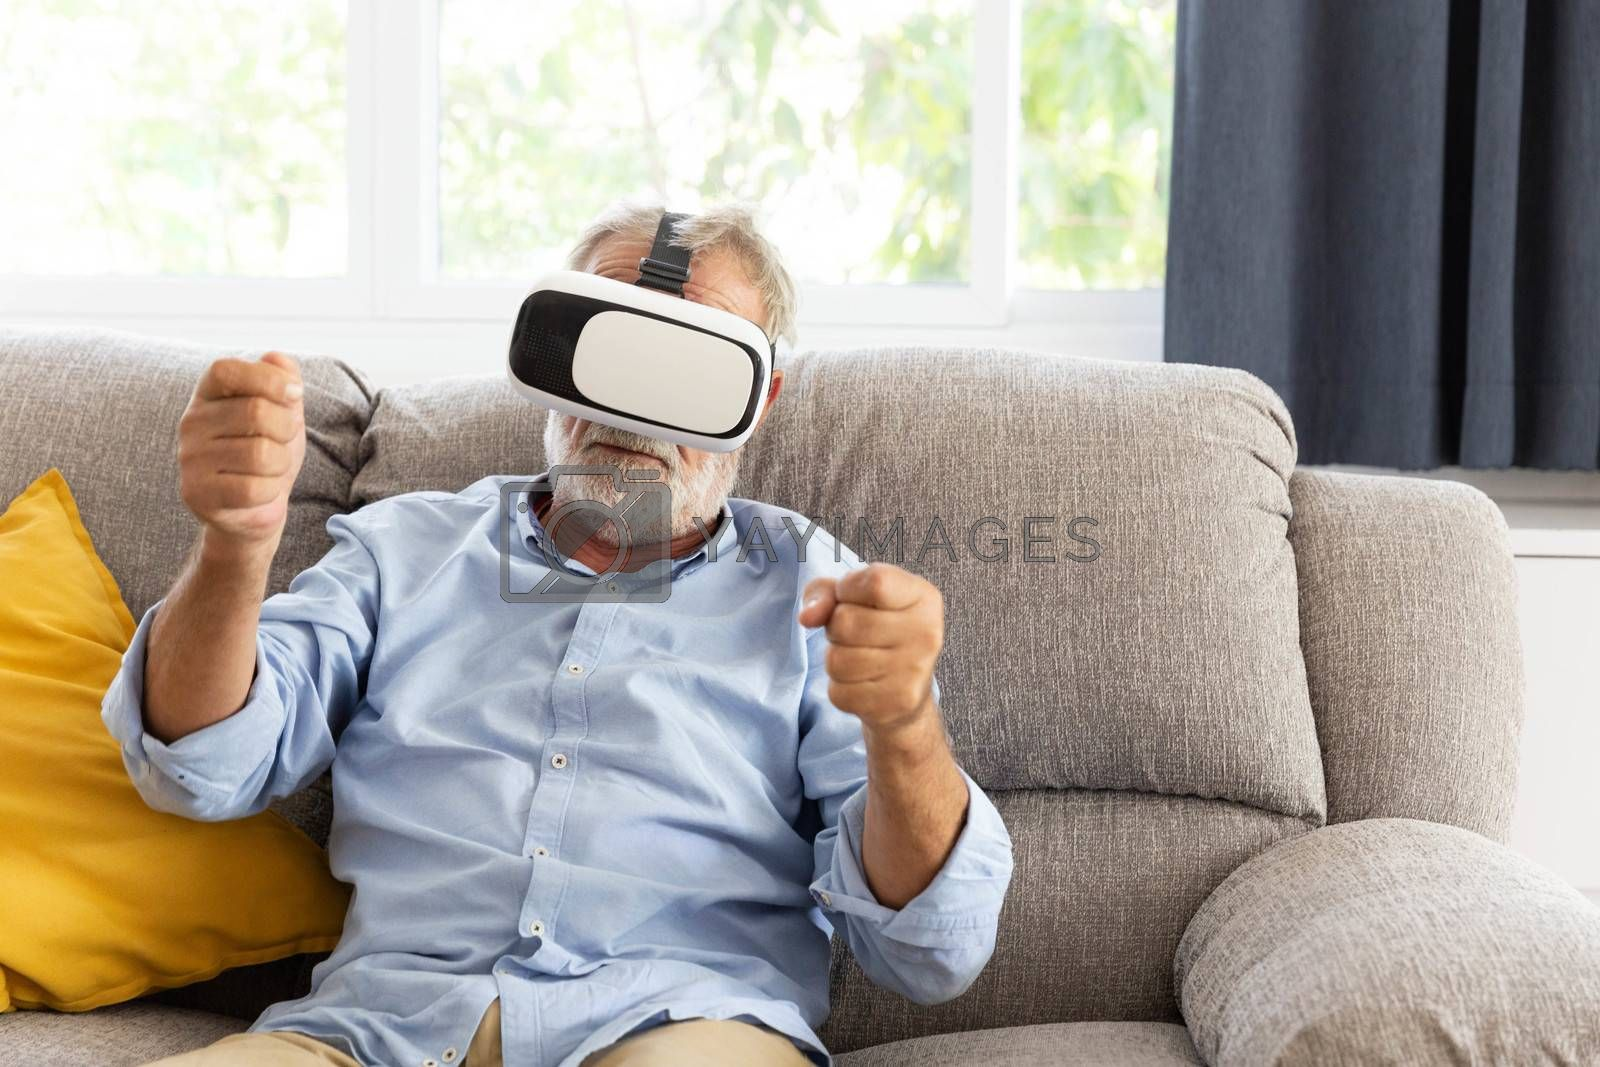 Senior retirement man playing with VR gadget in living room in his home